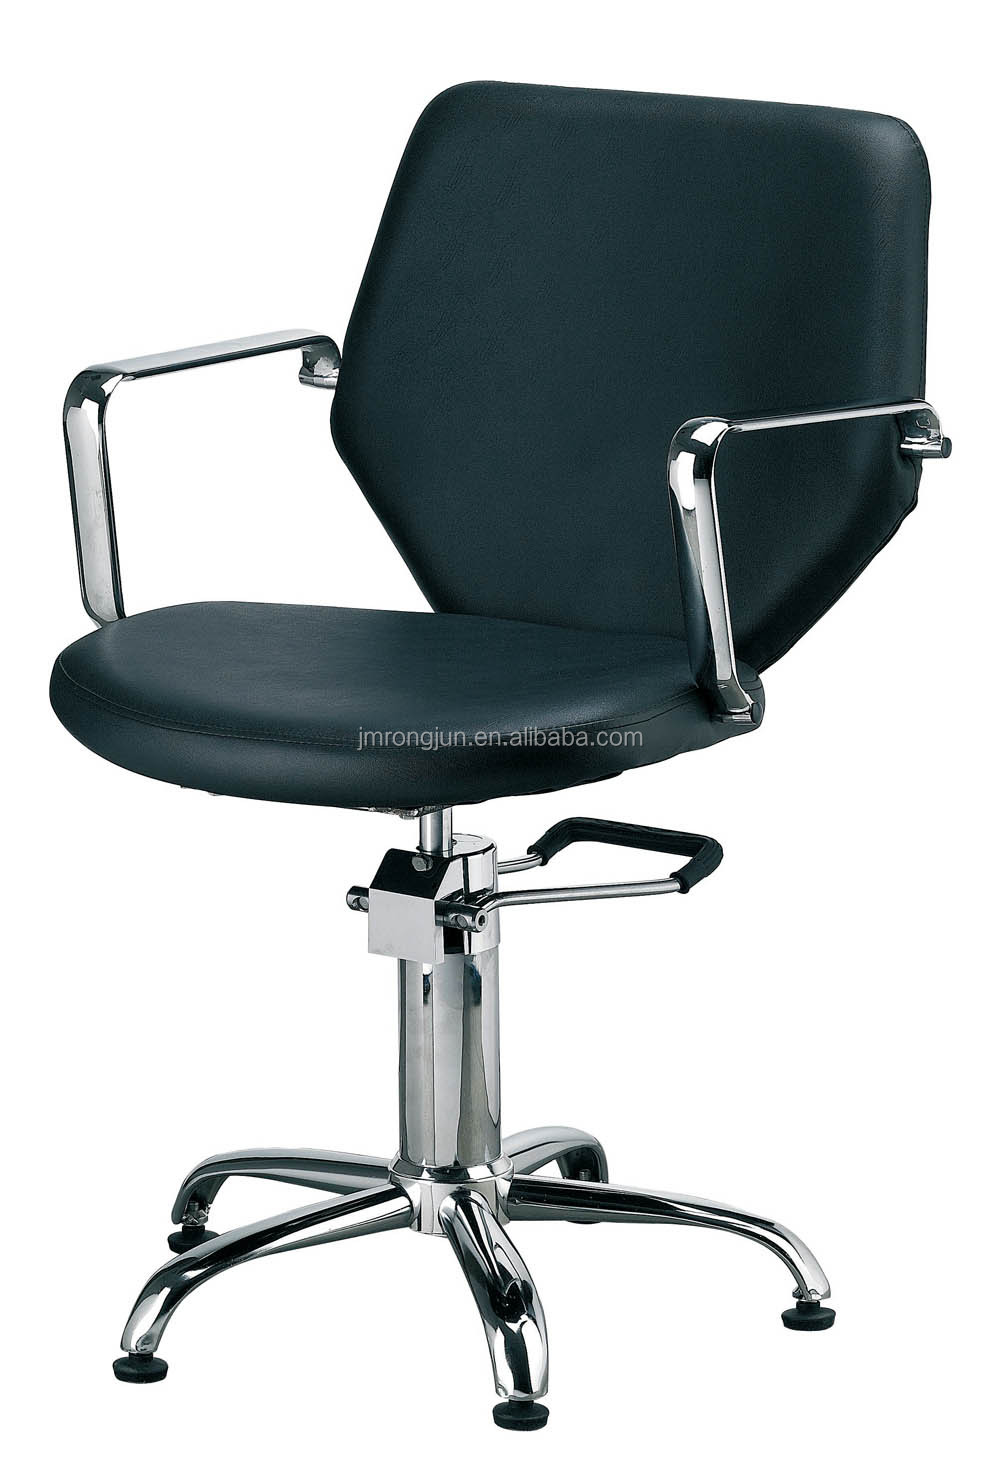 Hairdressing chair old style man barber chair for Hairdressing chairs